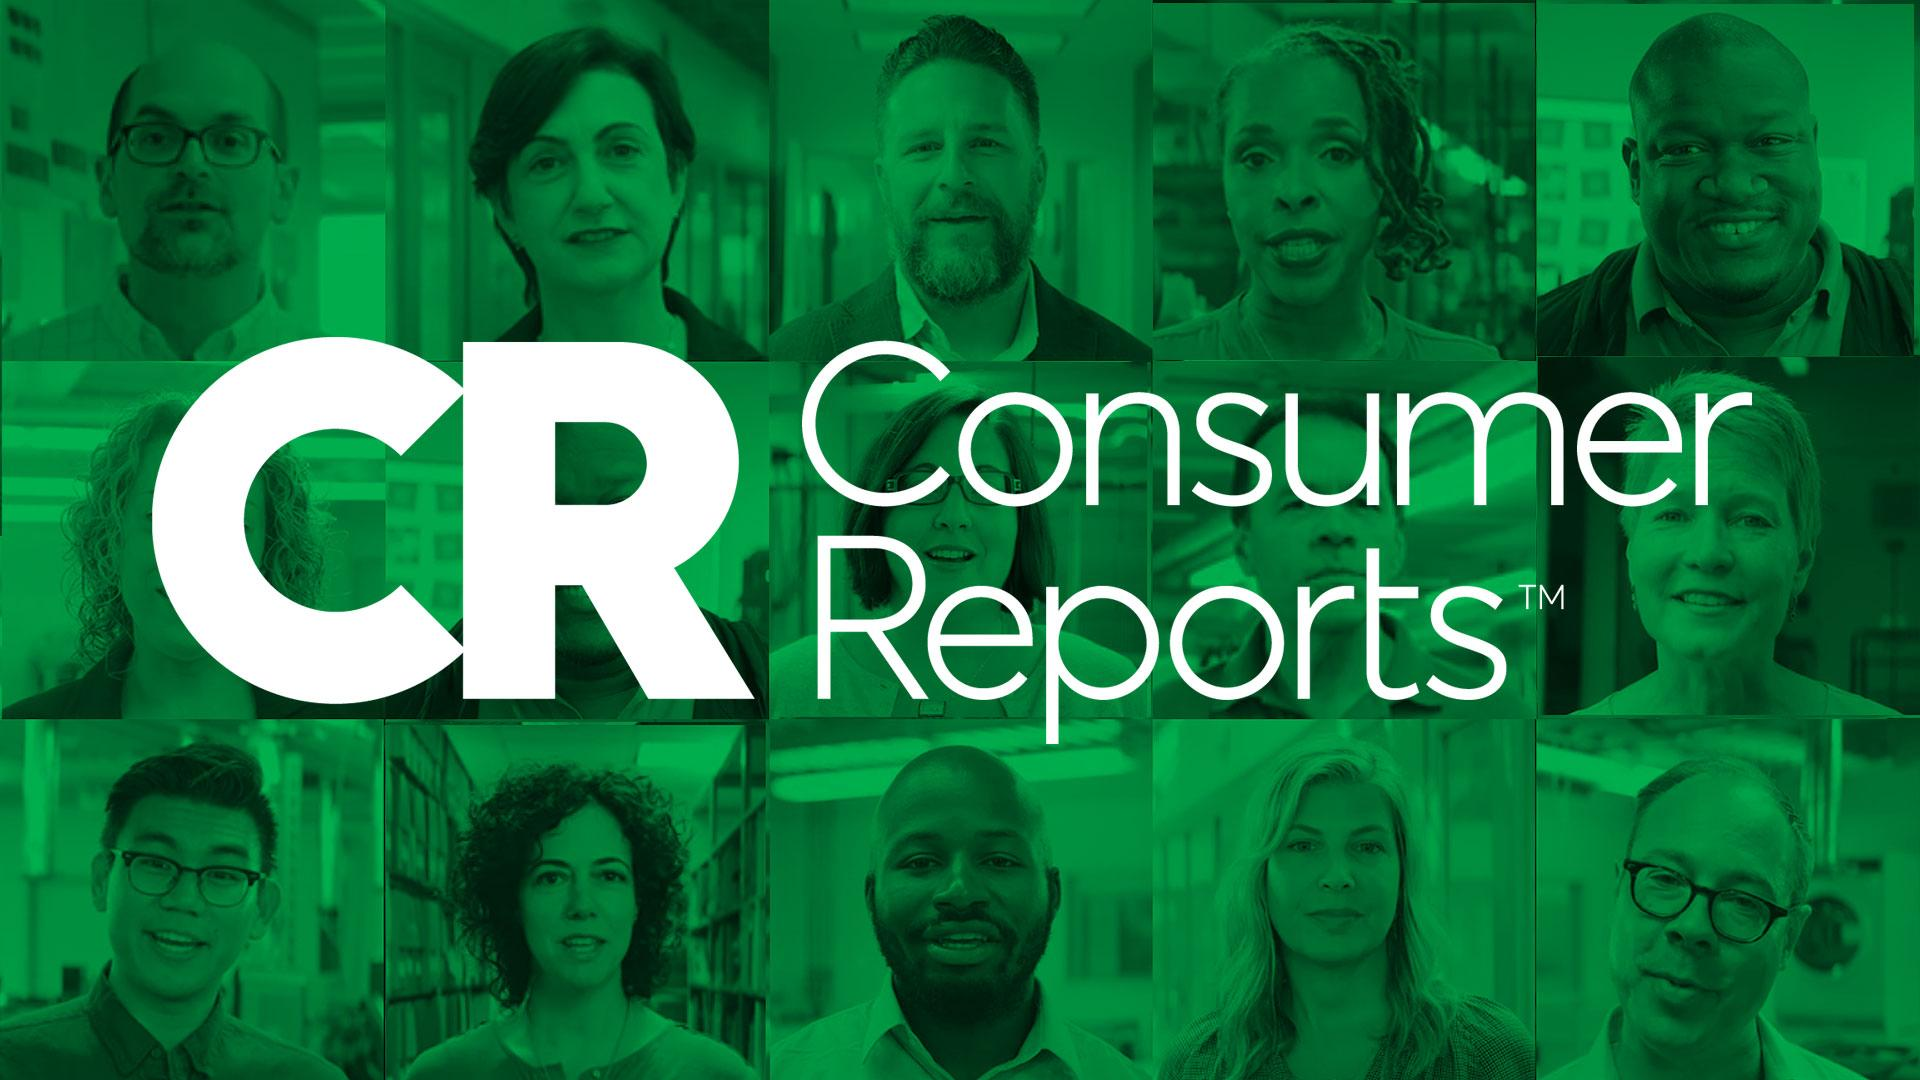 We Put Ourselves to the Test - Consumer Reports